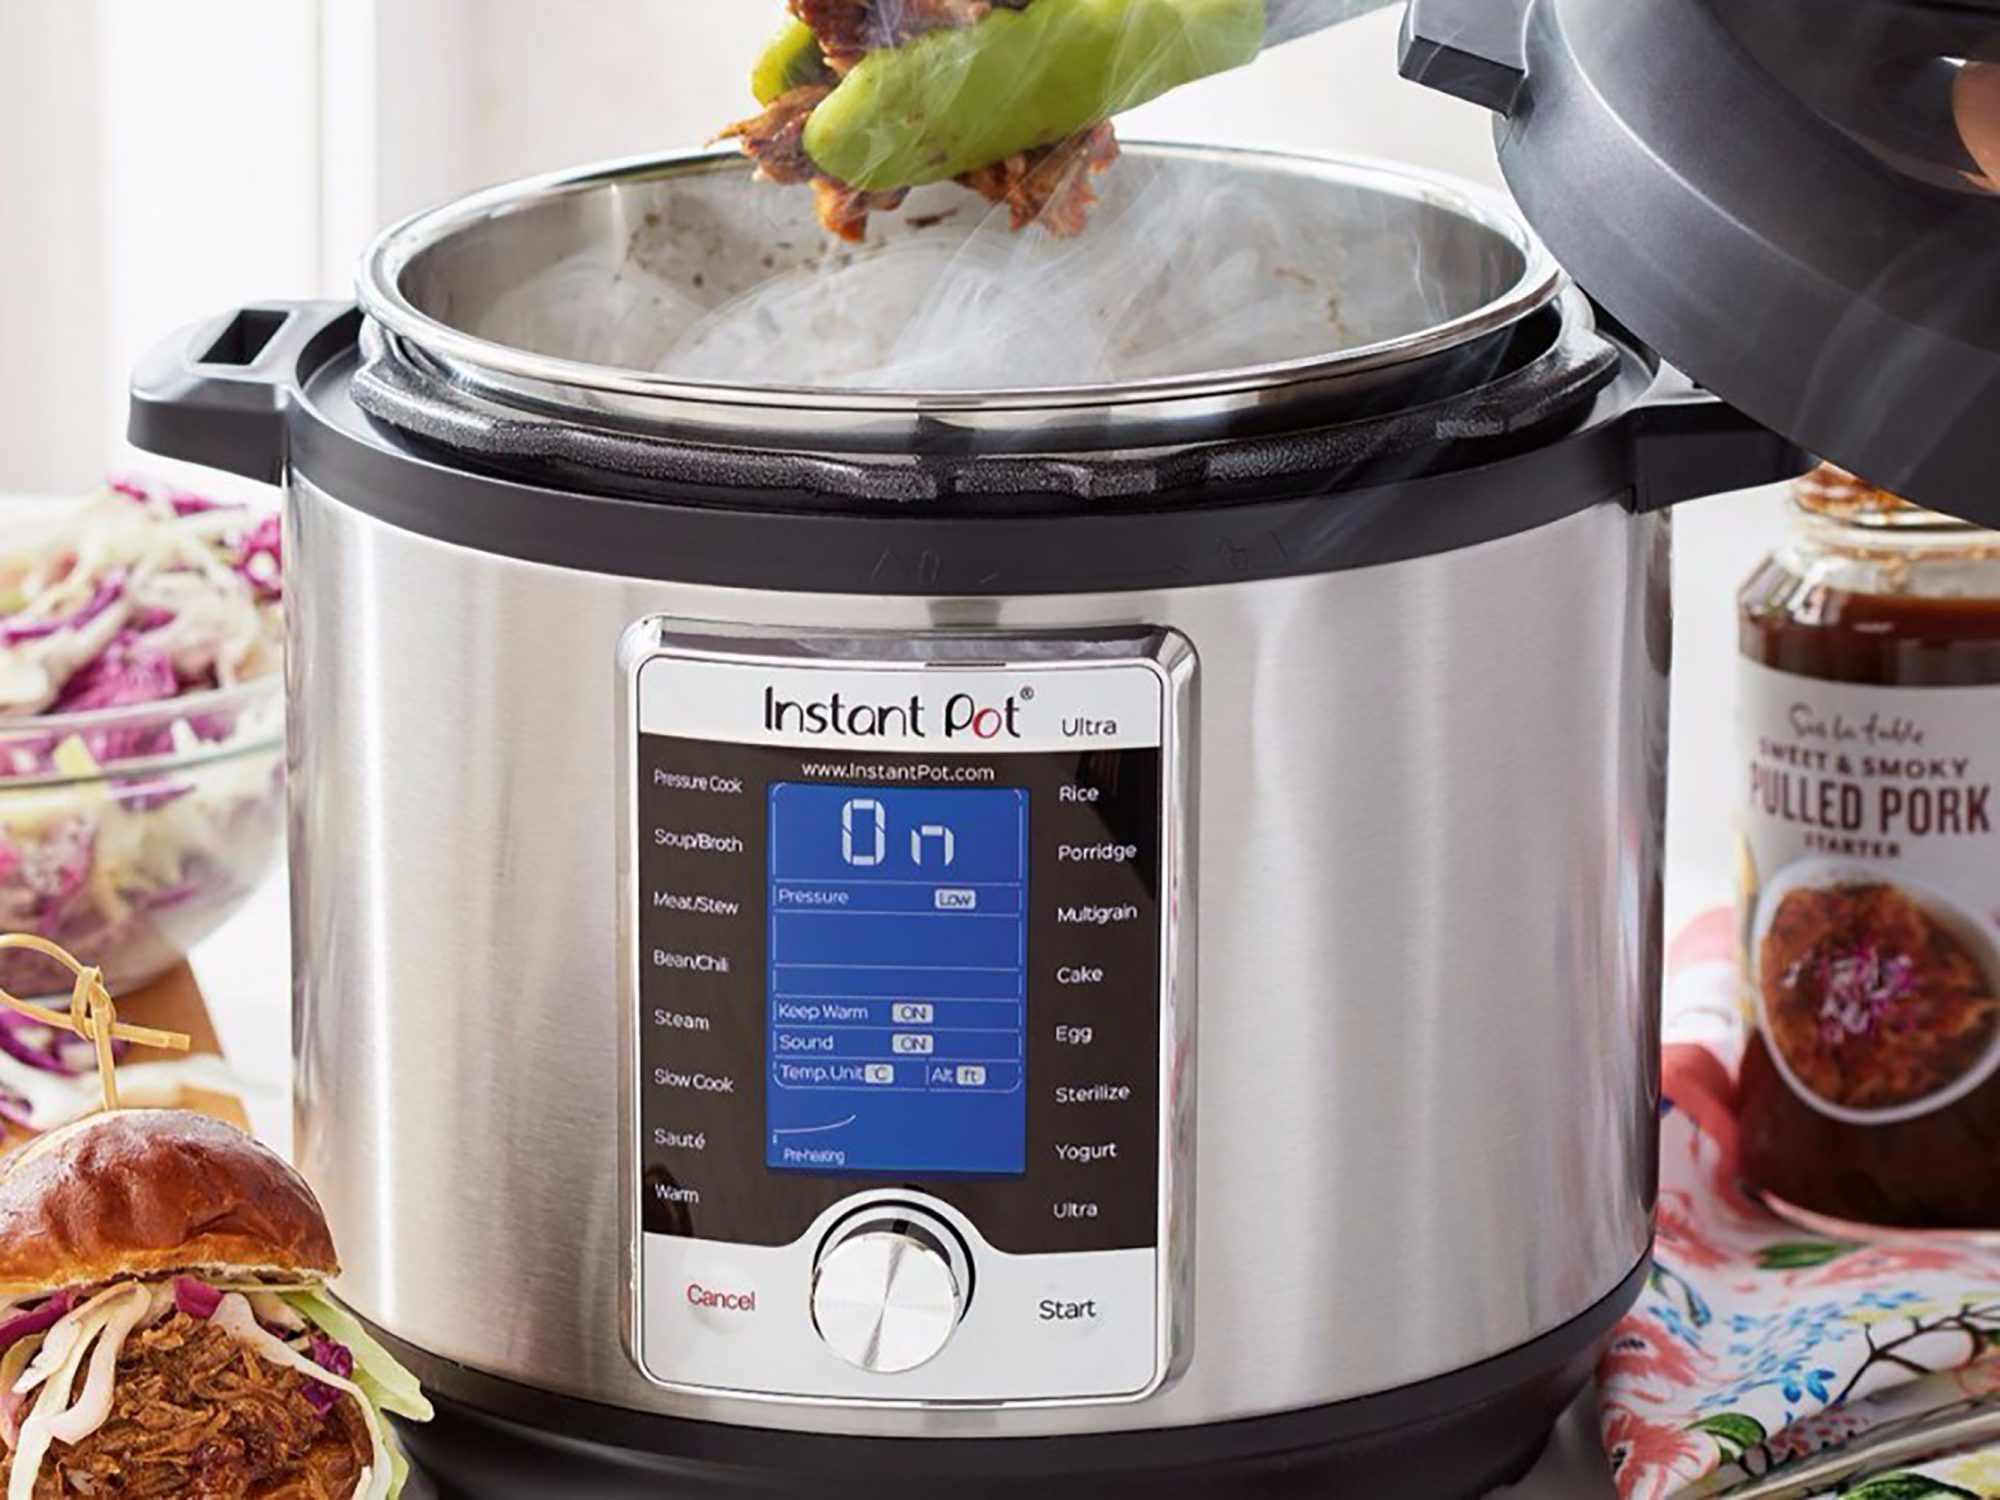 Run, Don't Walk: Instant Pot Ultra Is Just $99 at Sur La Table